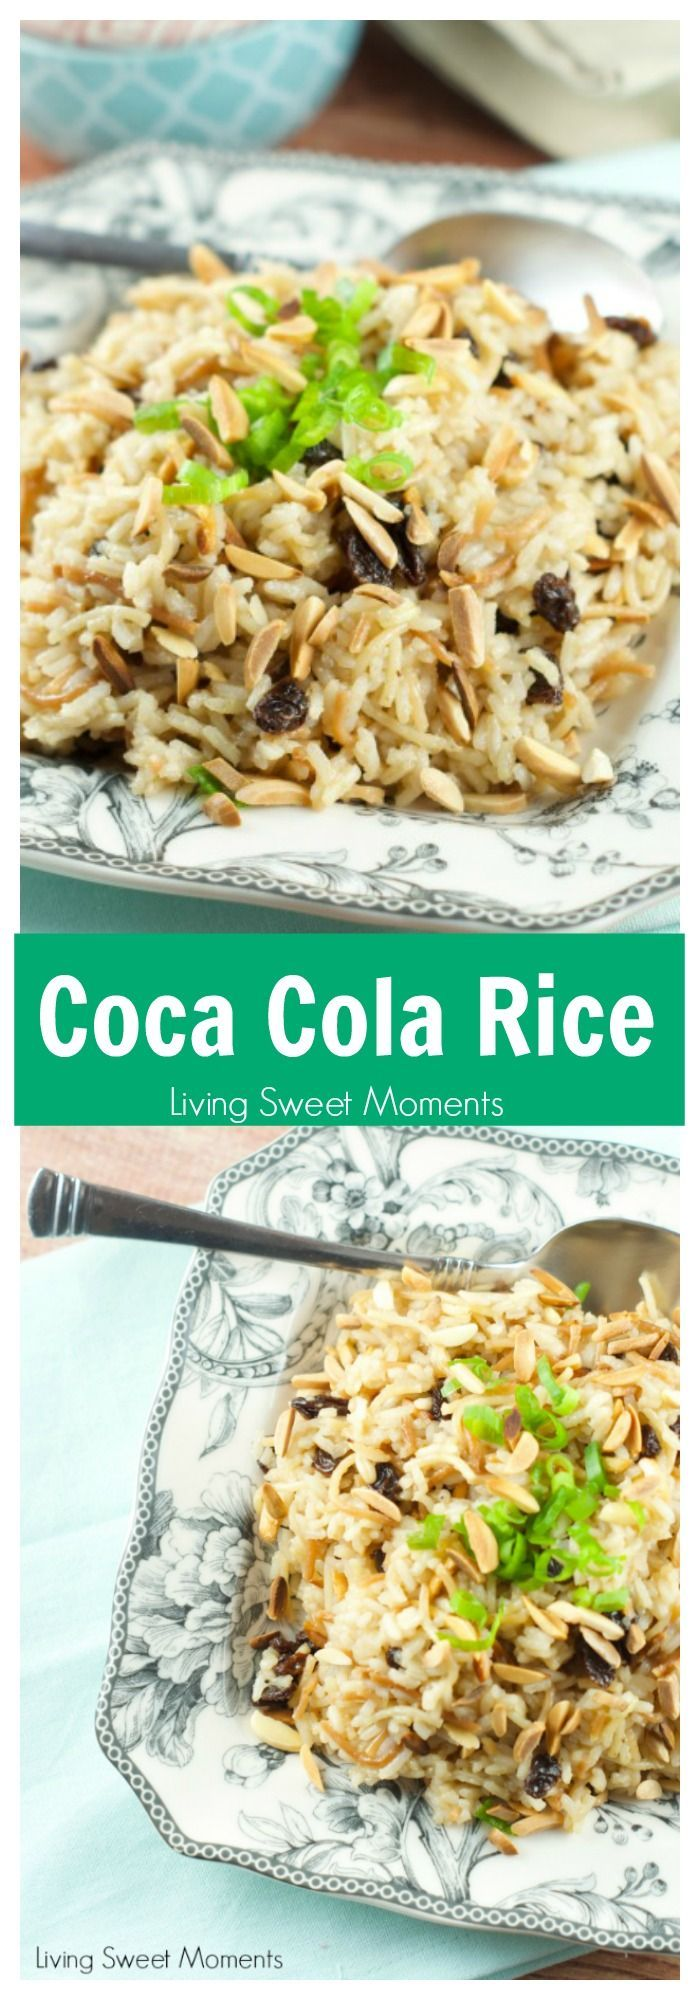 Coca Cola Rice Recipe: This delicious latin rice made with coca cola is topped with raisins and toasted almonds. Great and easy side dish to any meal. More rice recipes at livingsweetmoments.com  via @Livingsmoments